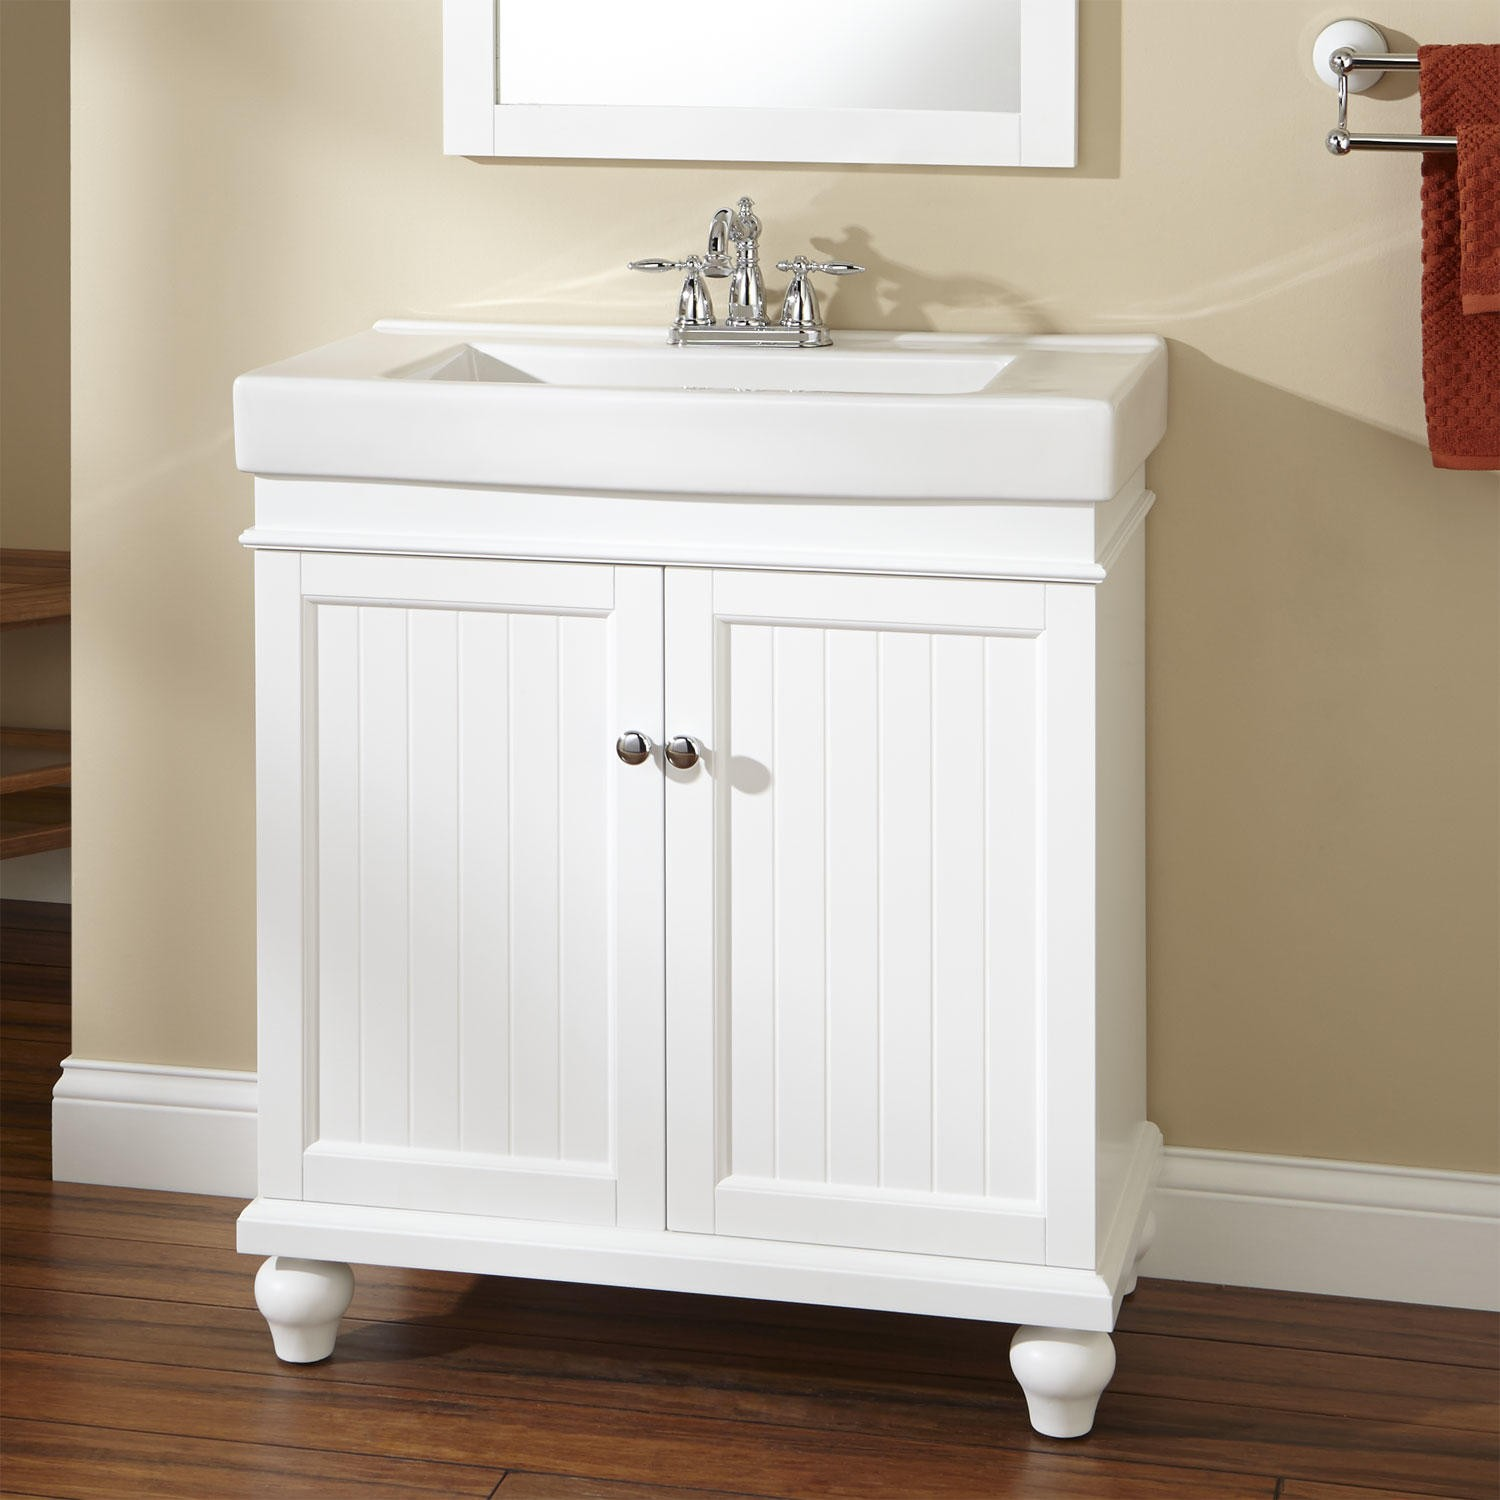 Image of: Ikea Double Vanity Paint